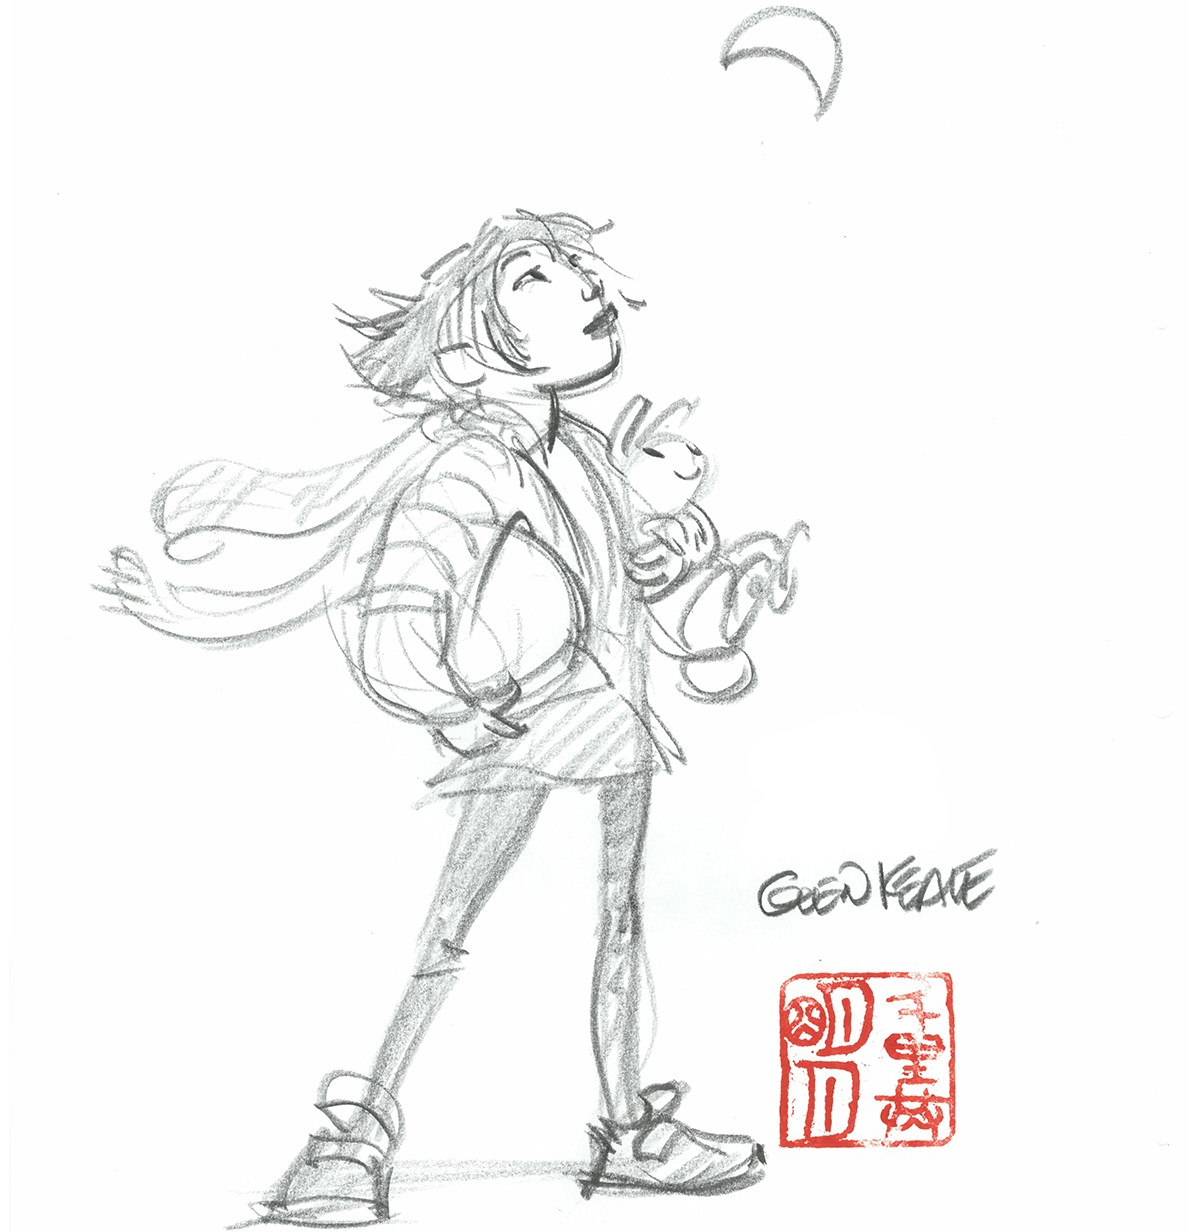 Glen_Keane-_Even-Though-We-Are-Separated-By-Thousands-of-Miles-We-Share-The-Same-Moon_.jpg